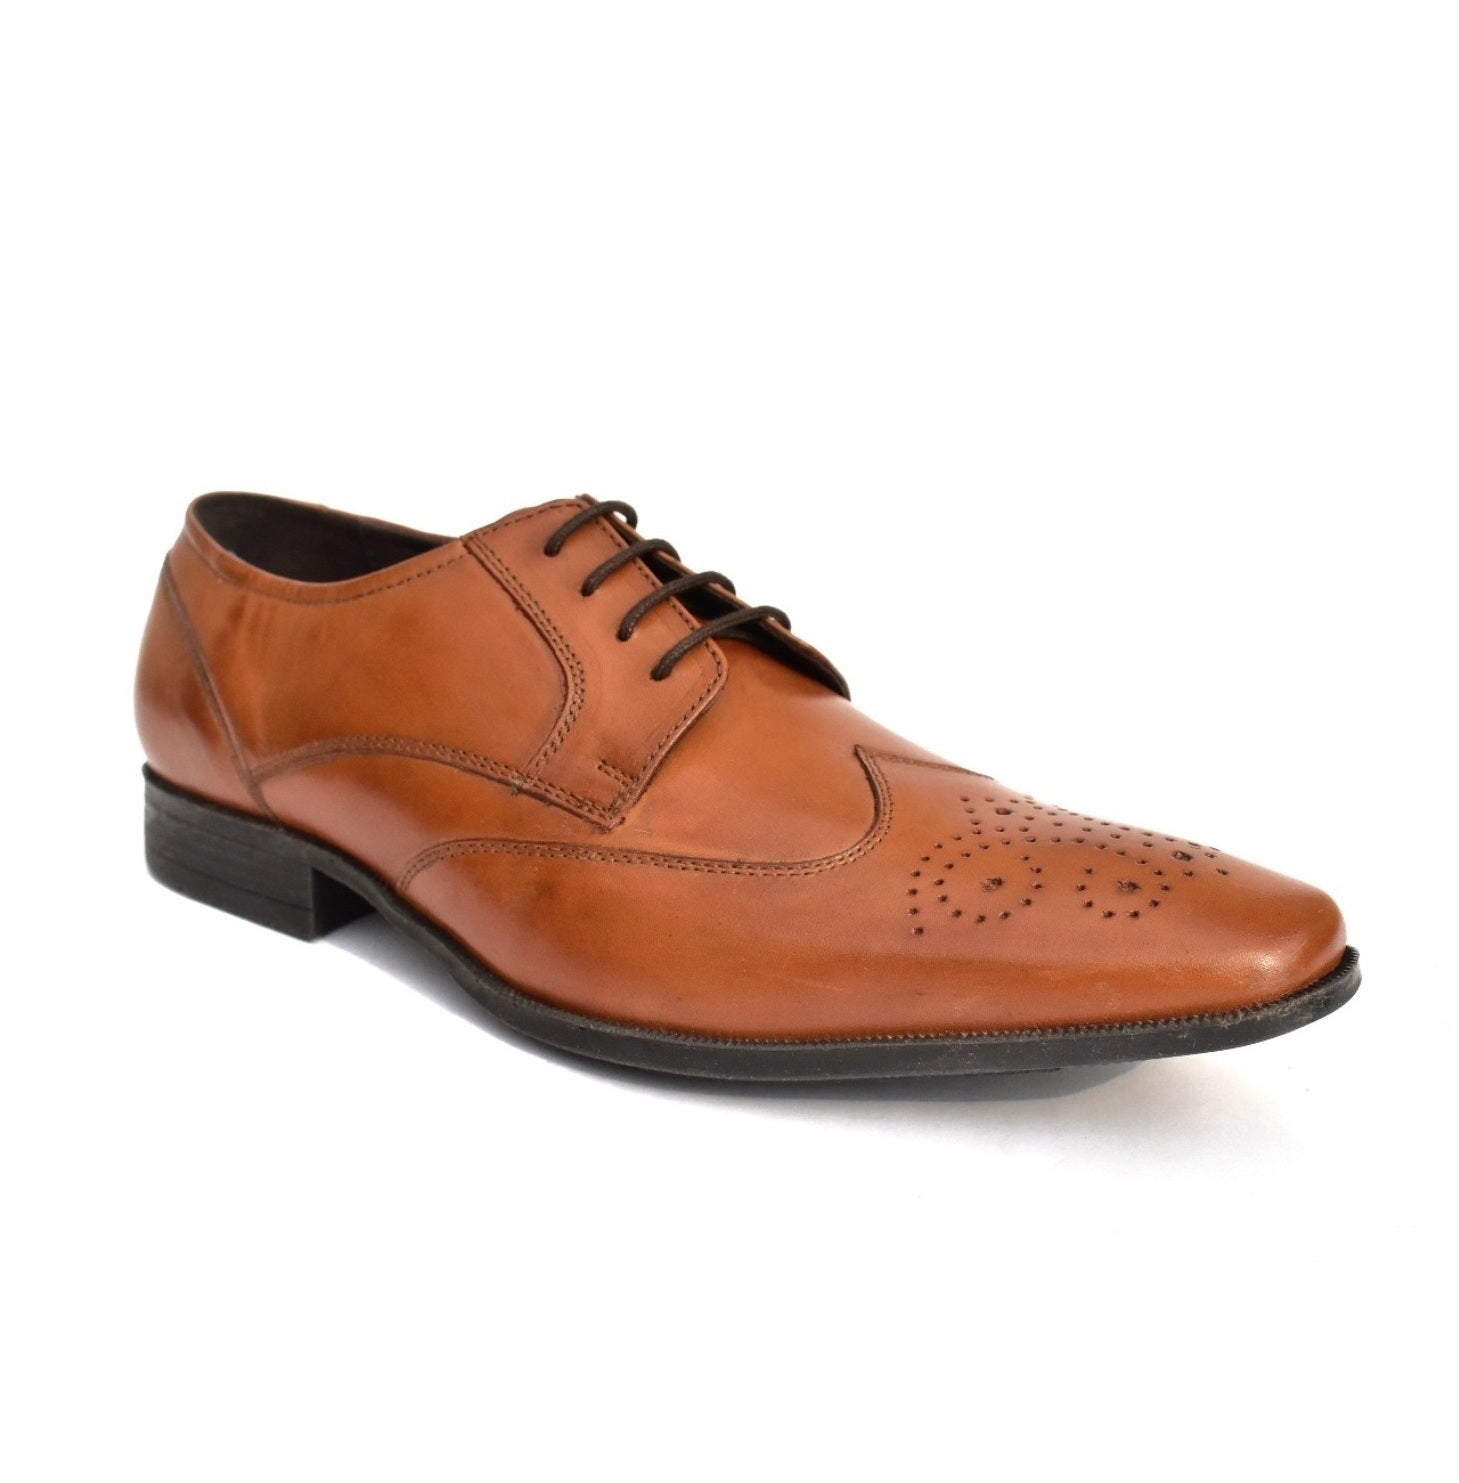 Urban Macchiato Brogue Shoe